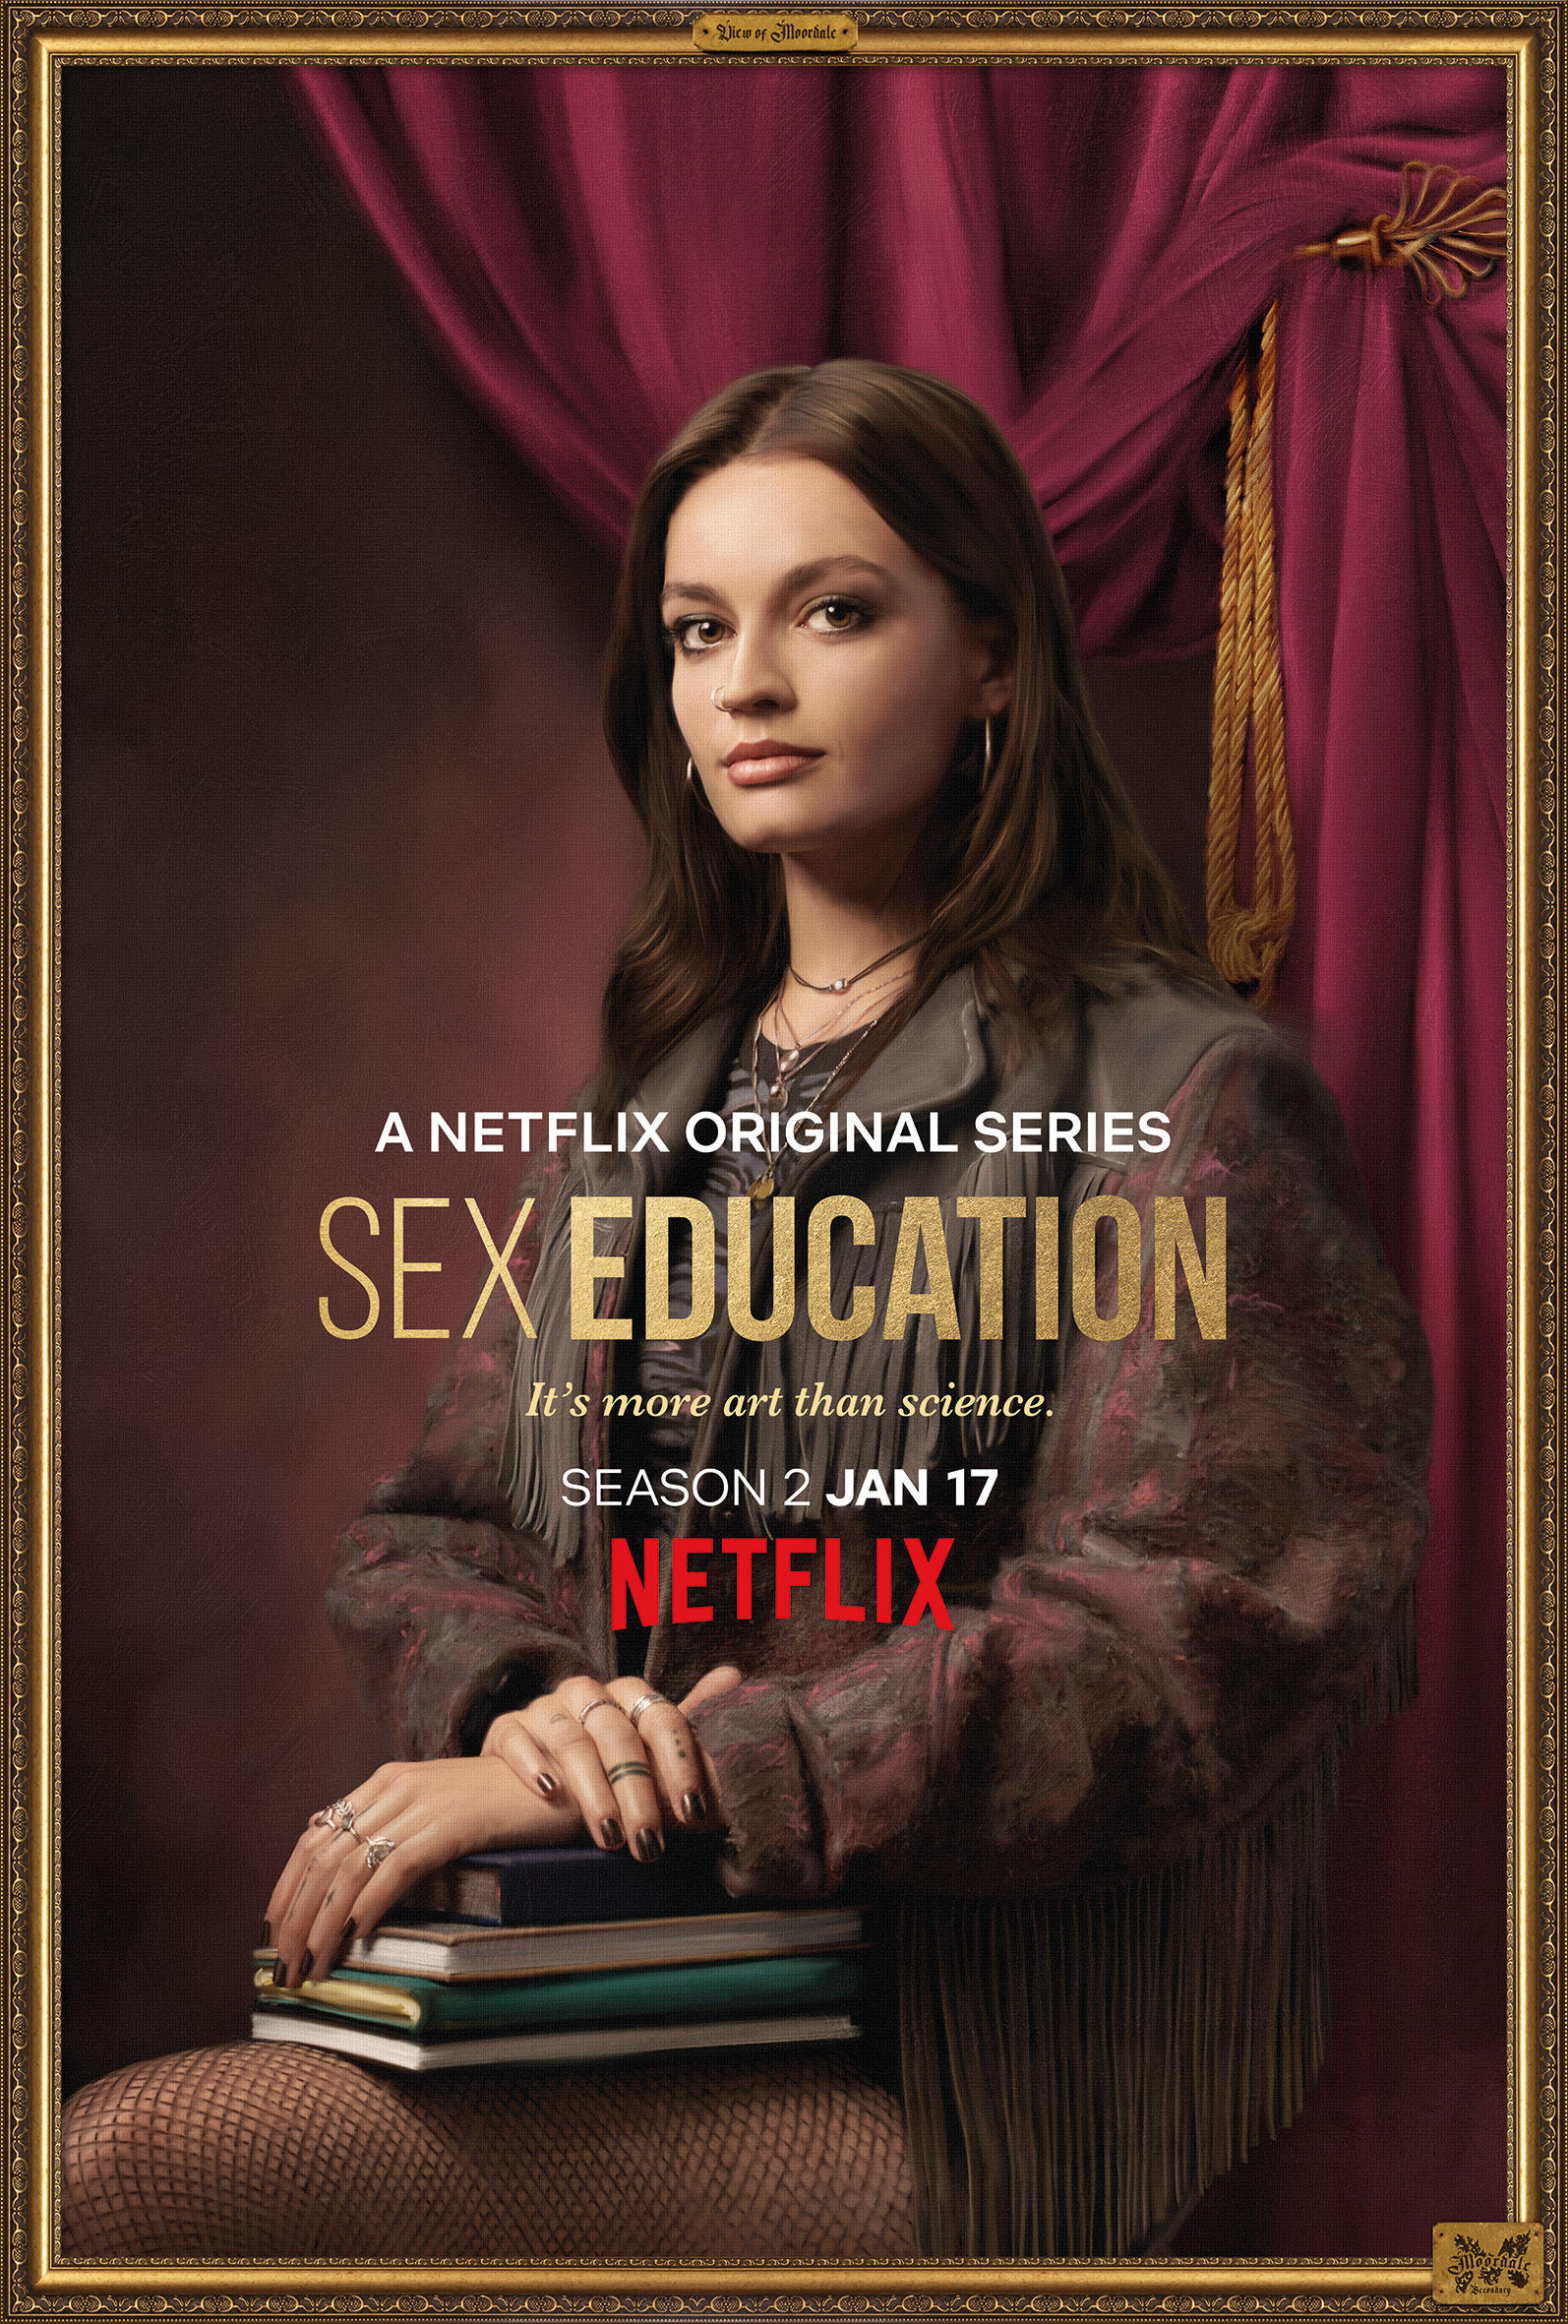 the sex education show episodes wikipedia in Nashville